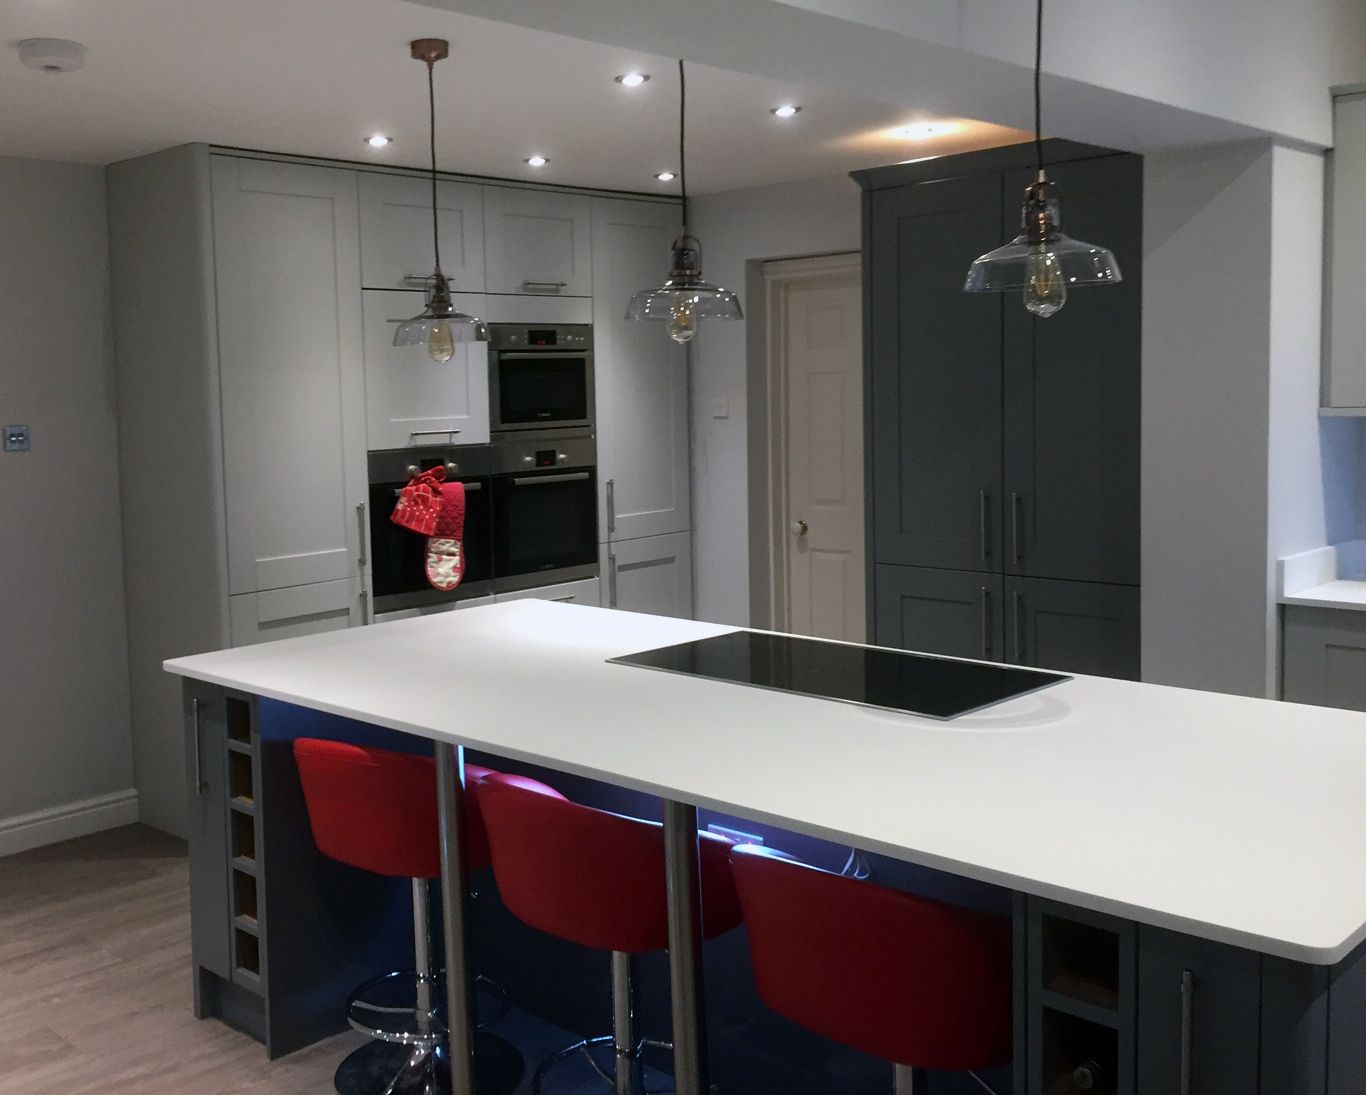 Kitchen supplied by Benchmarx Leek. Shaker are a